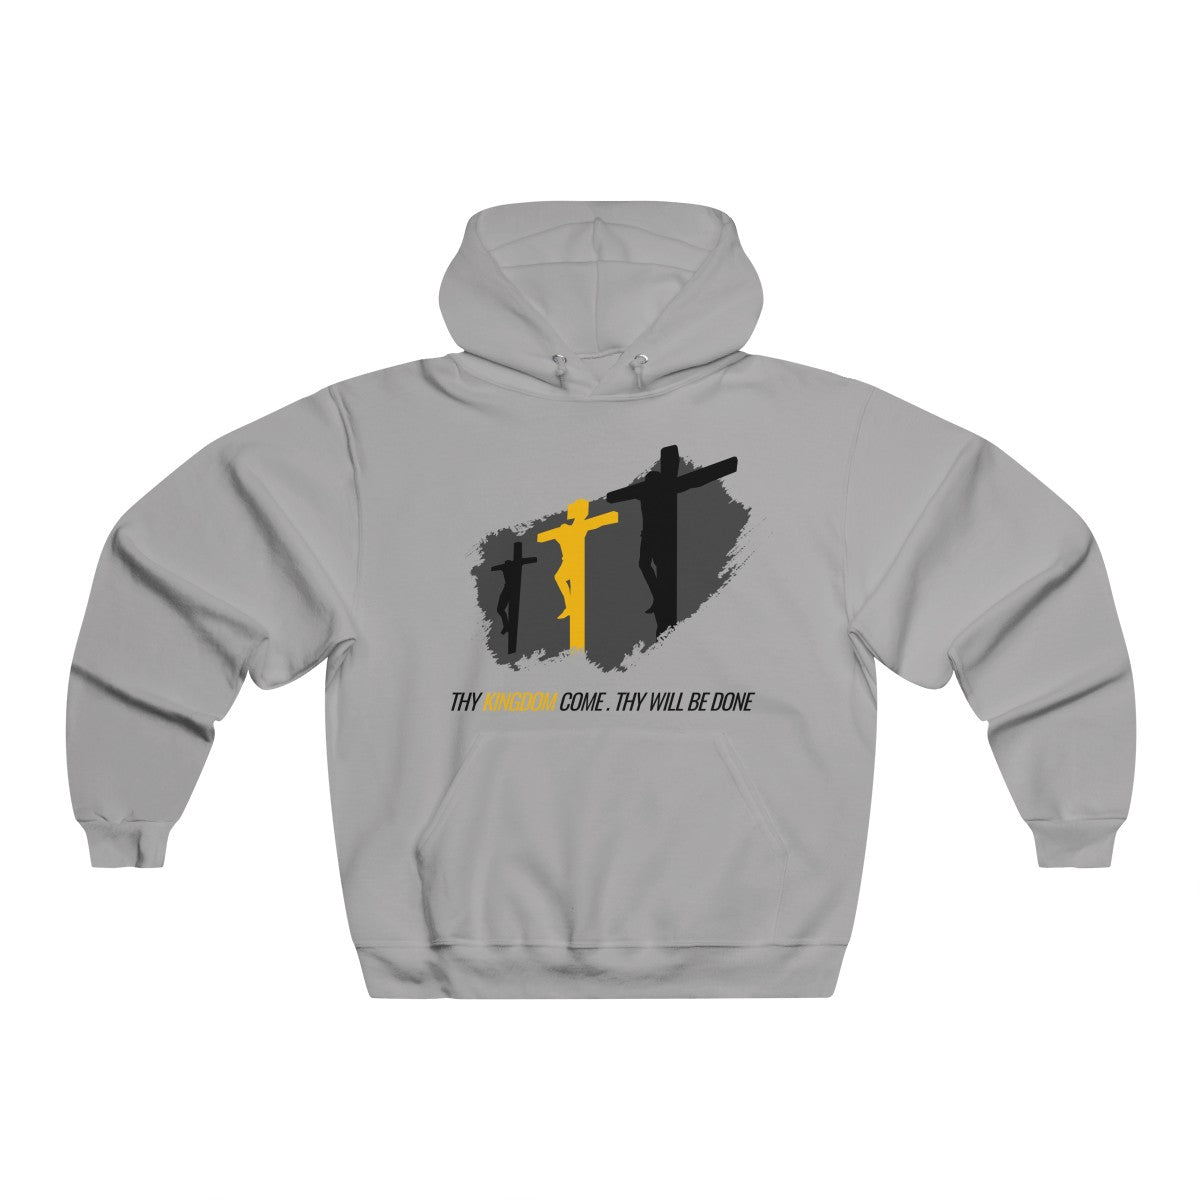 3 Crosses Men's Hooded Sweatshirt